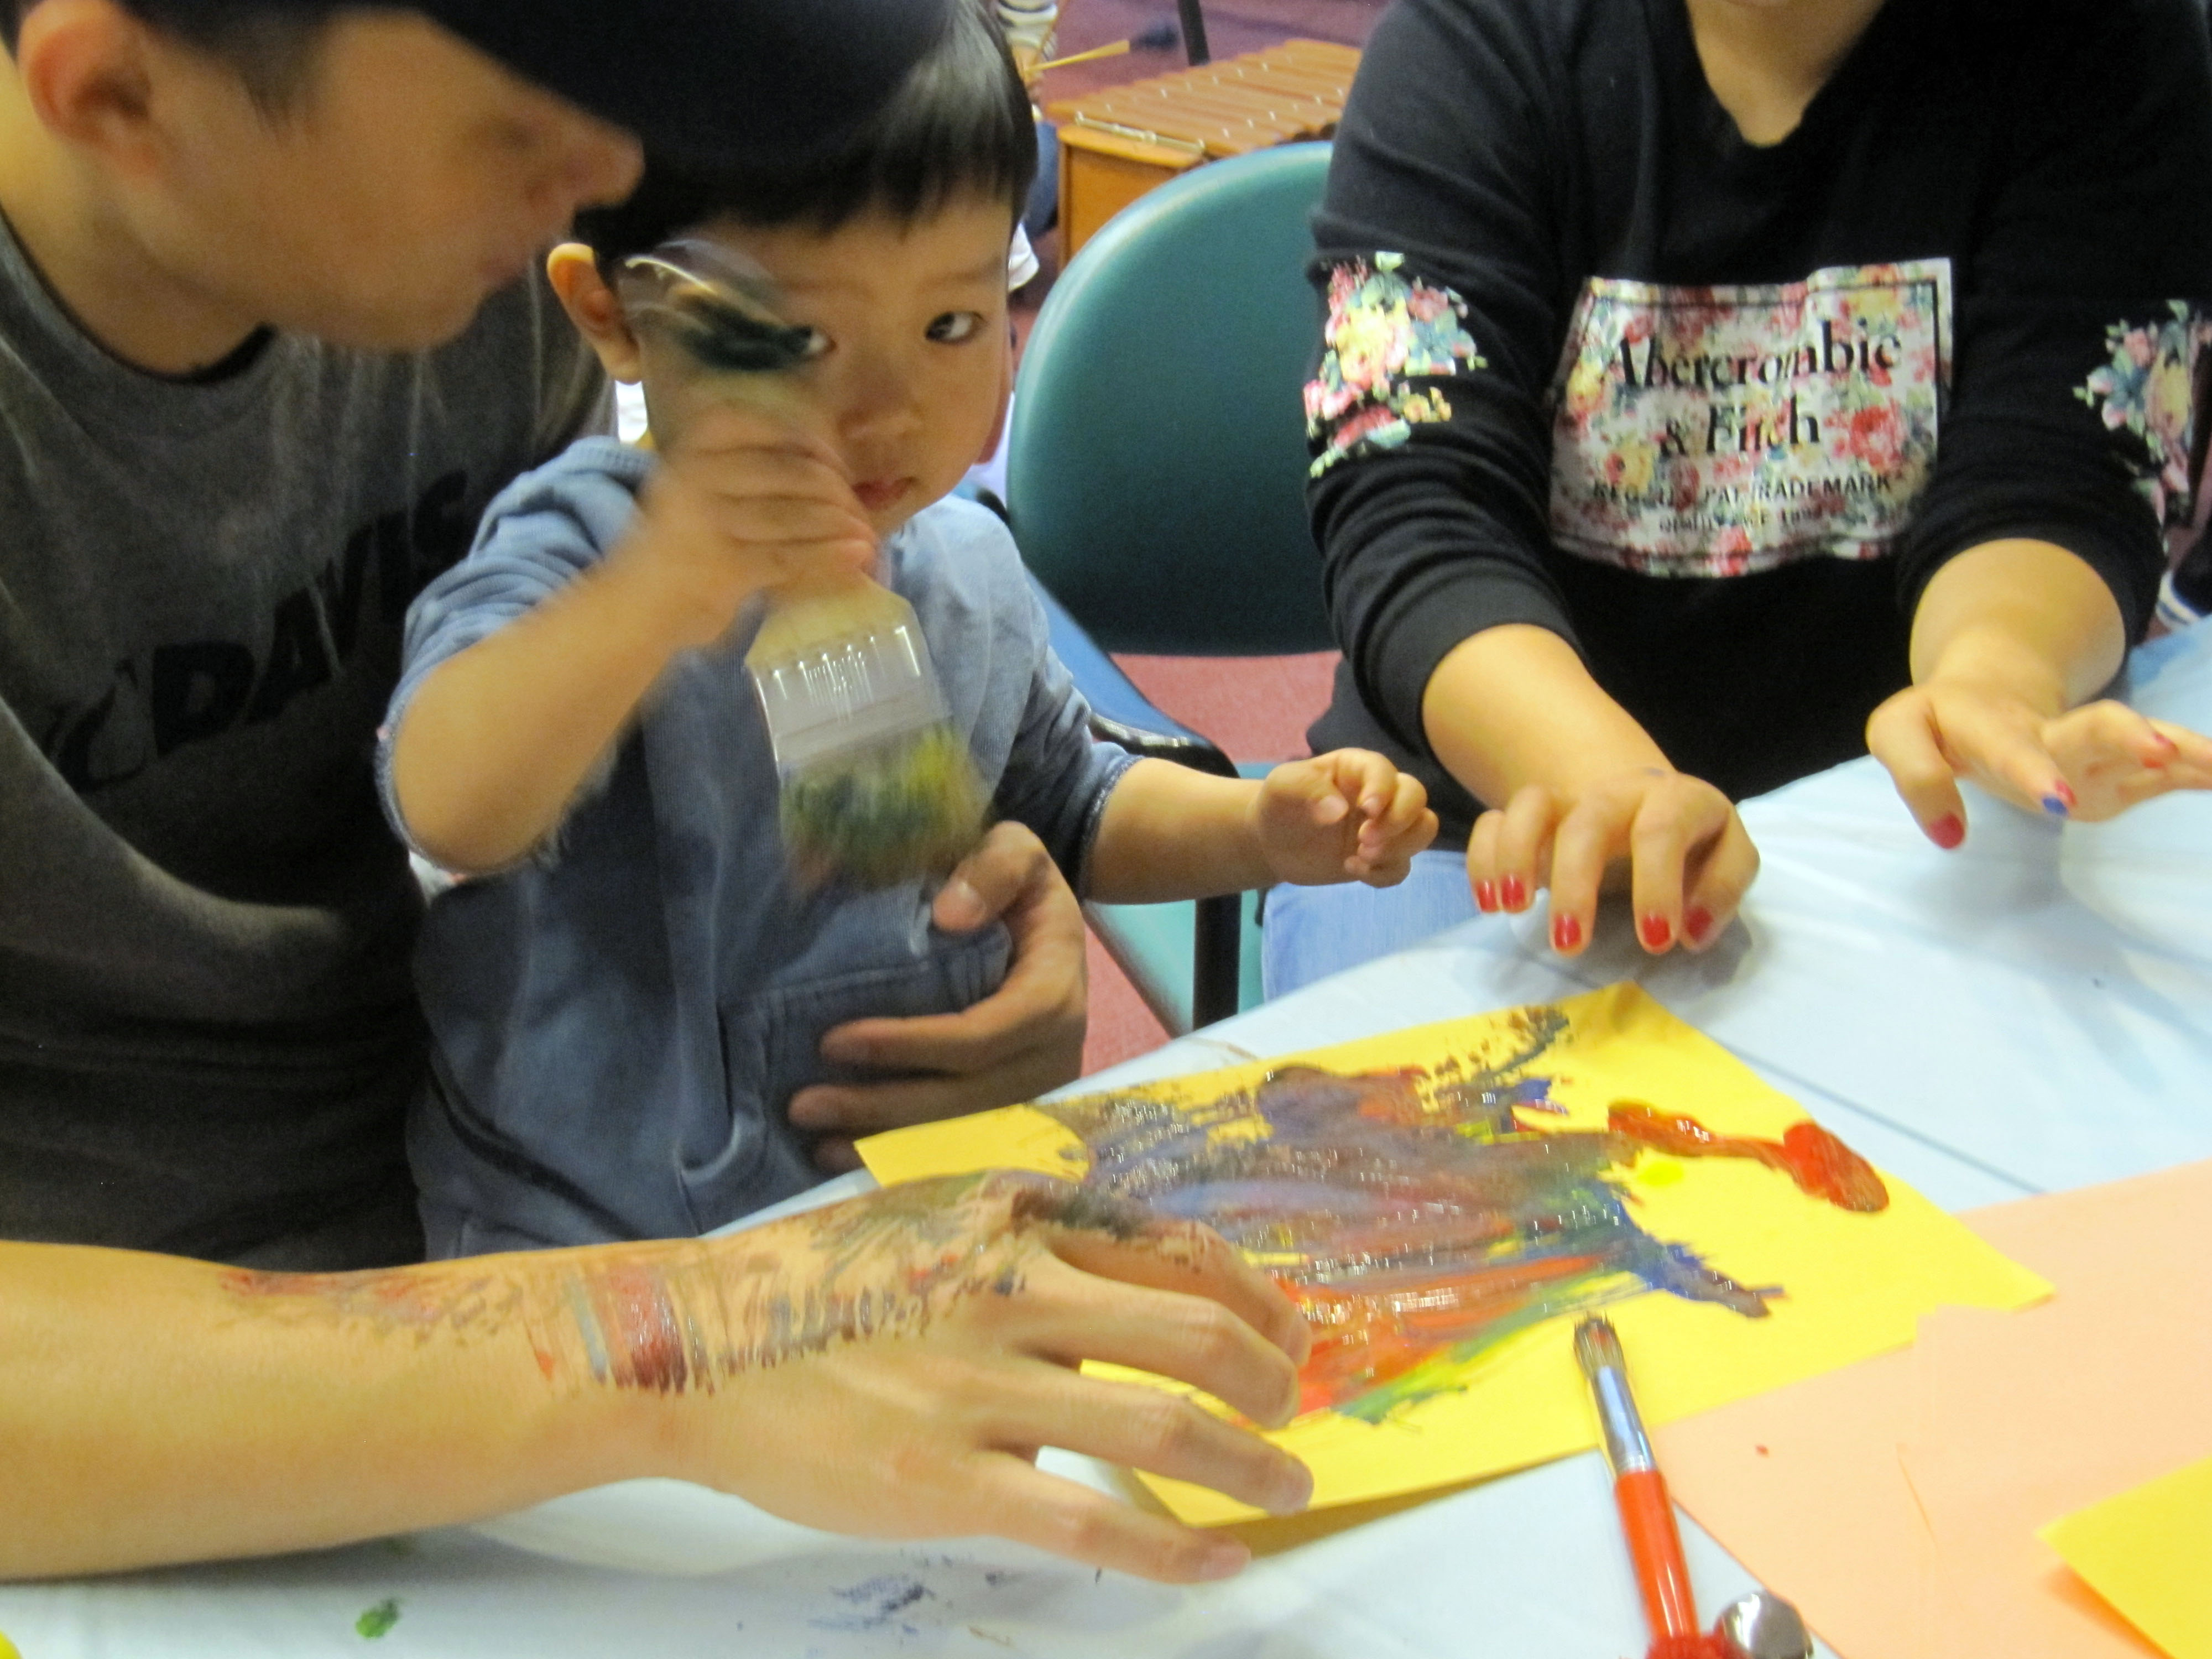 Young children paint with primary colors. Their paint brushes have different size bells attached, ringing with each stroke.